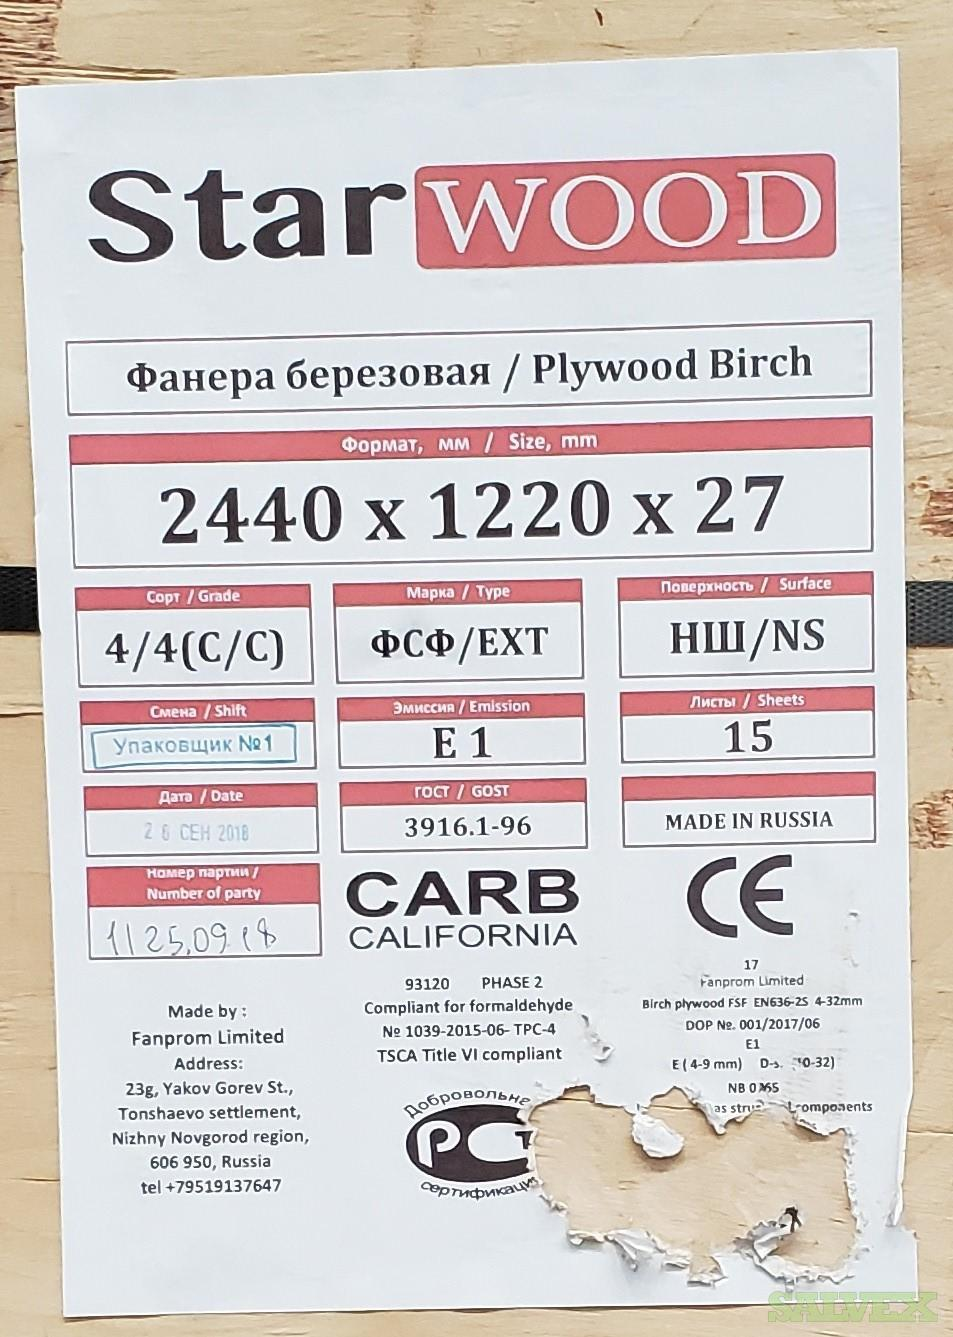 C/C Russian Birch Plywood 27mm 4'x8'   -  Approx 1,080 sheets / (3 Truckload) in Maryland